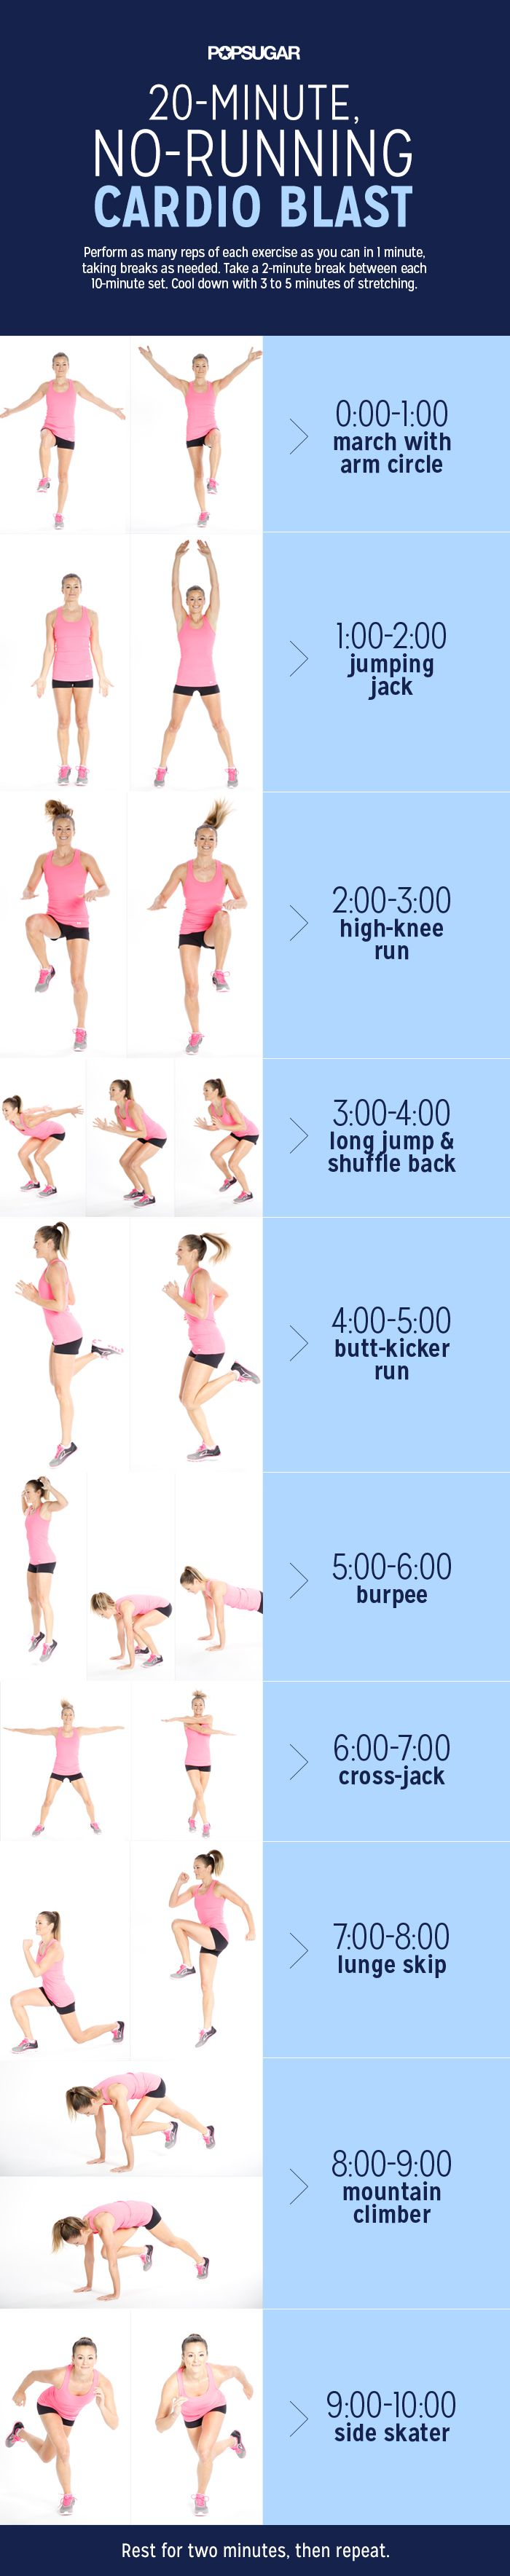 27 Hourglass Body Workouts That Will Give You An Amazing Fit 90 Minute Full Circuit Workout Sexy And I Know It Pinterest 20 No Running Cardio Blast 23d83ea5ccf07b2edc2ef838cdaef492